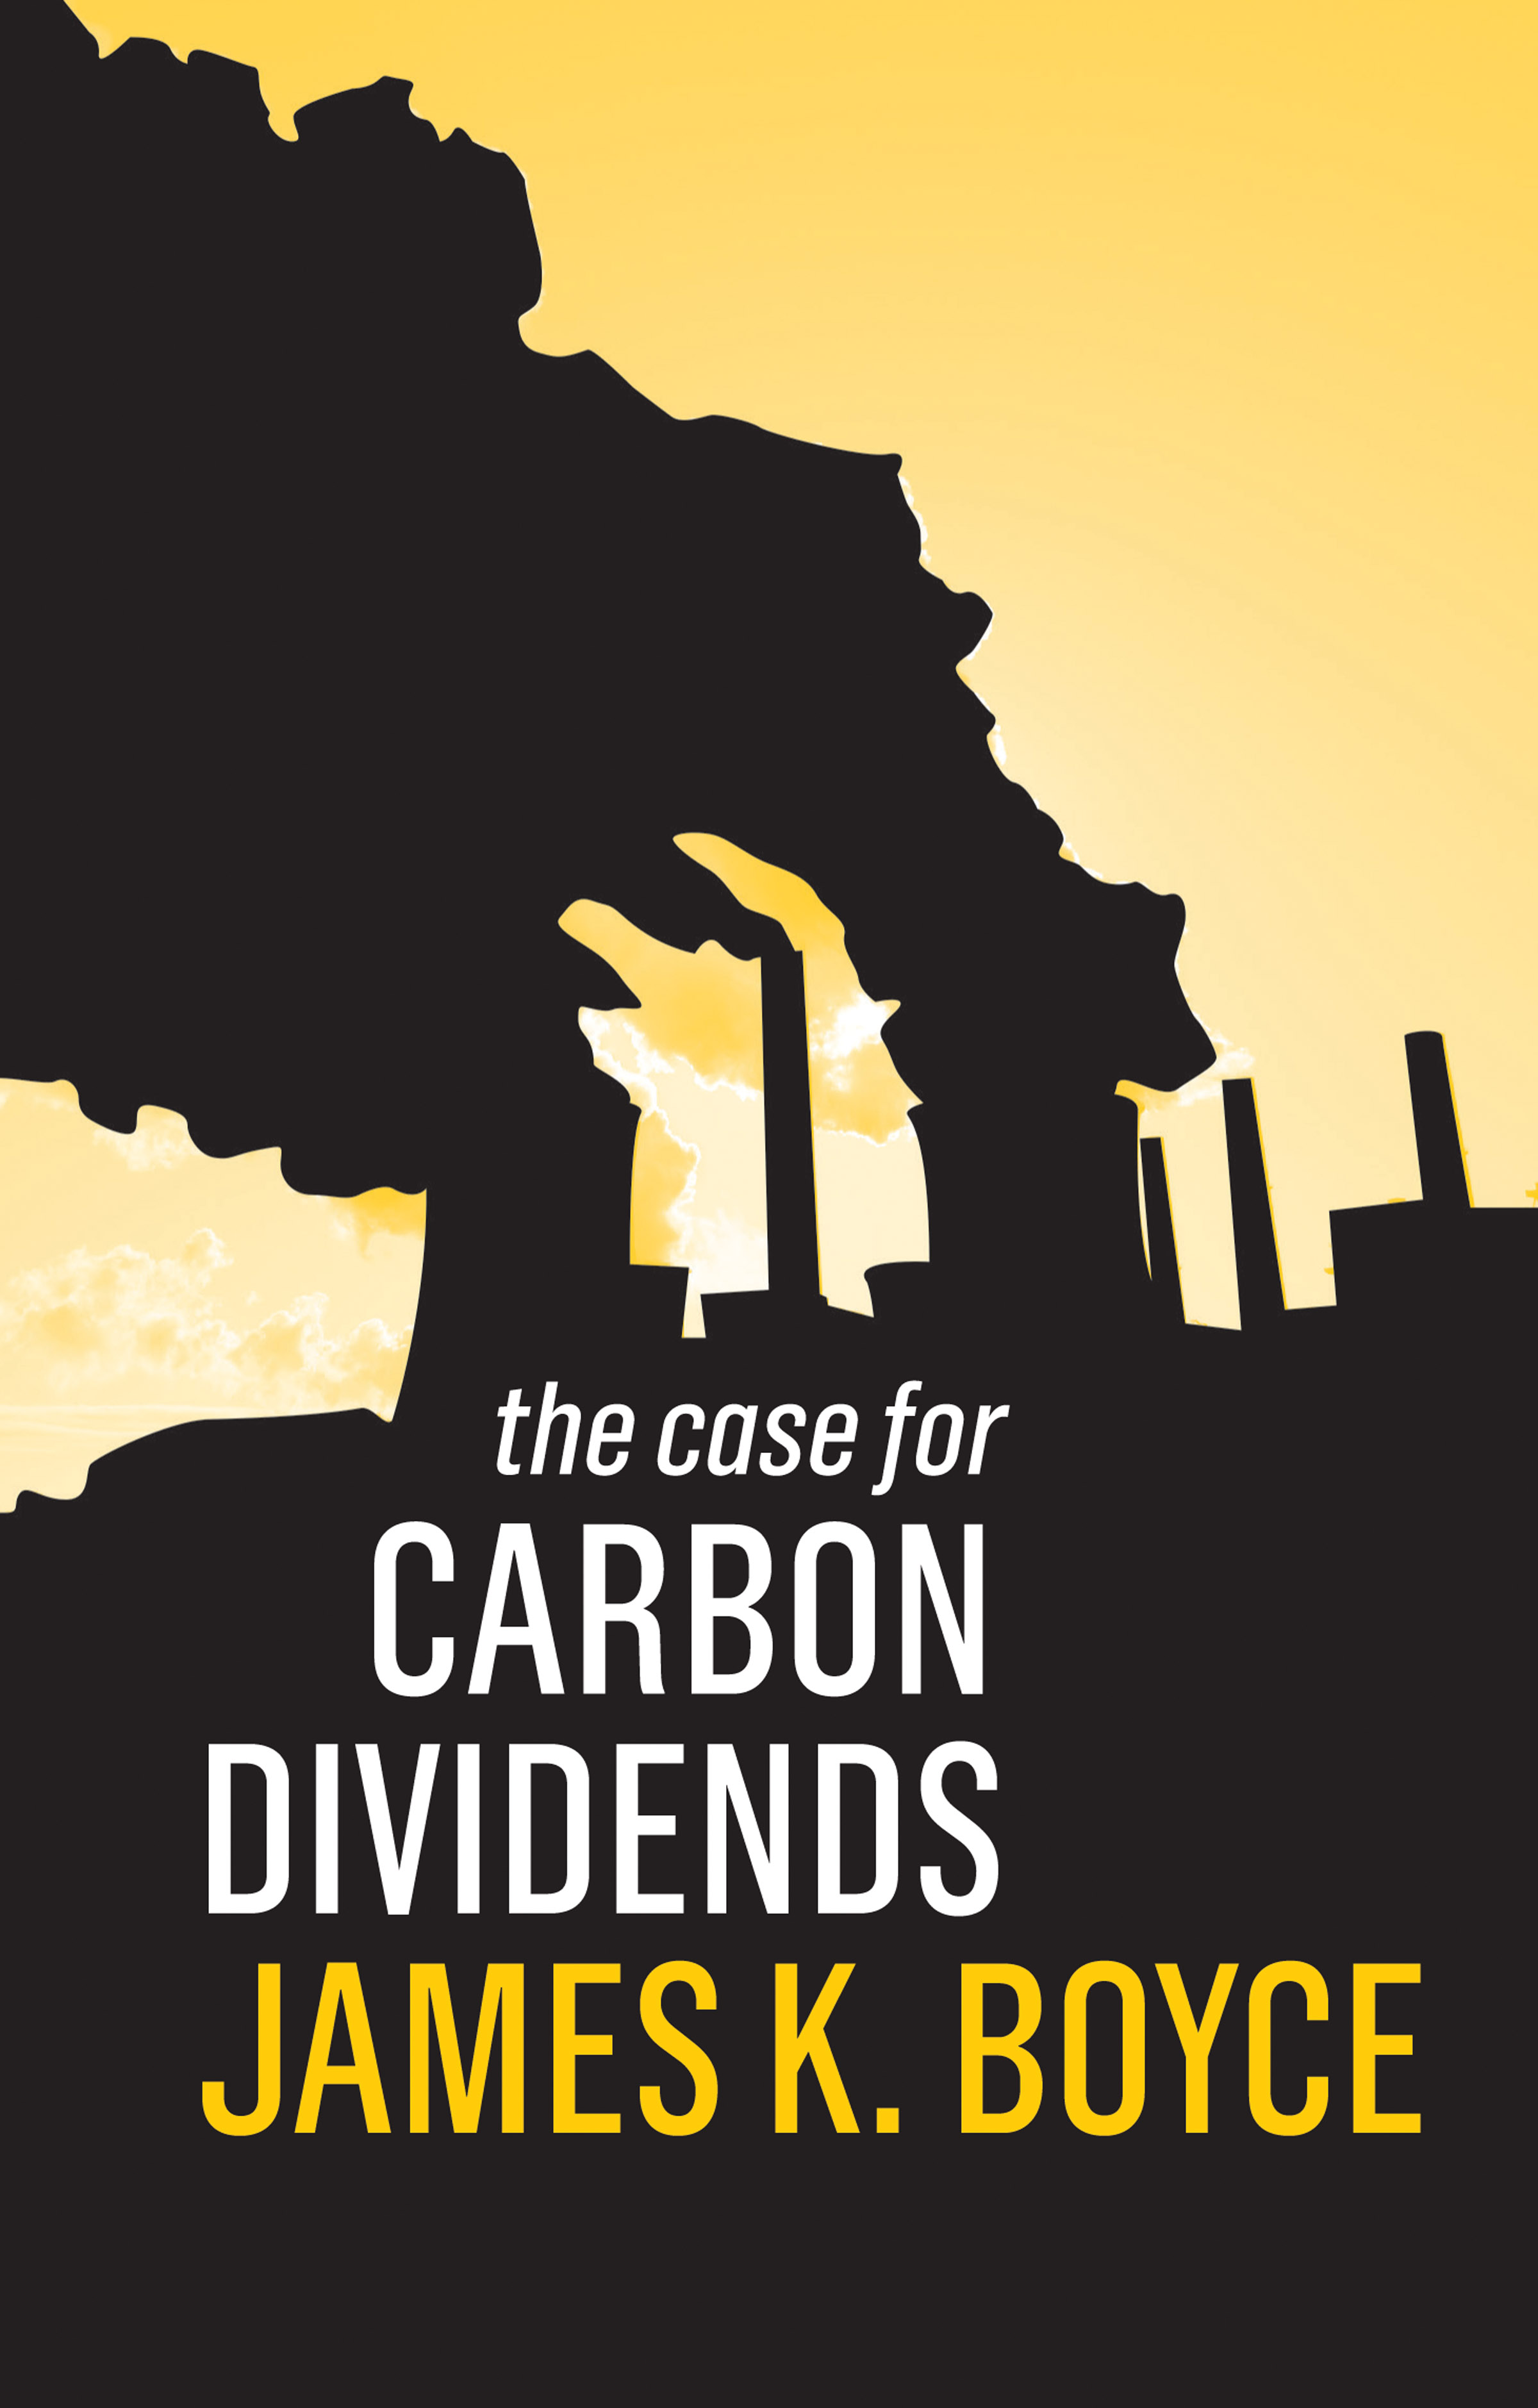 The case for carbon dividends. 9781509526550